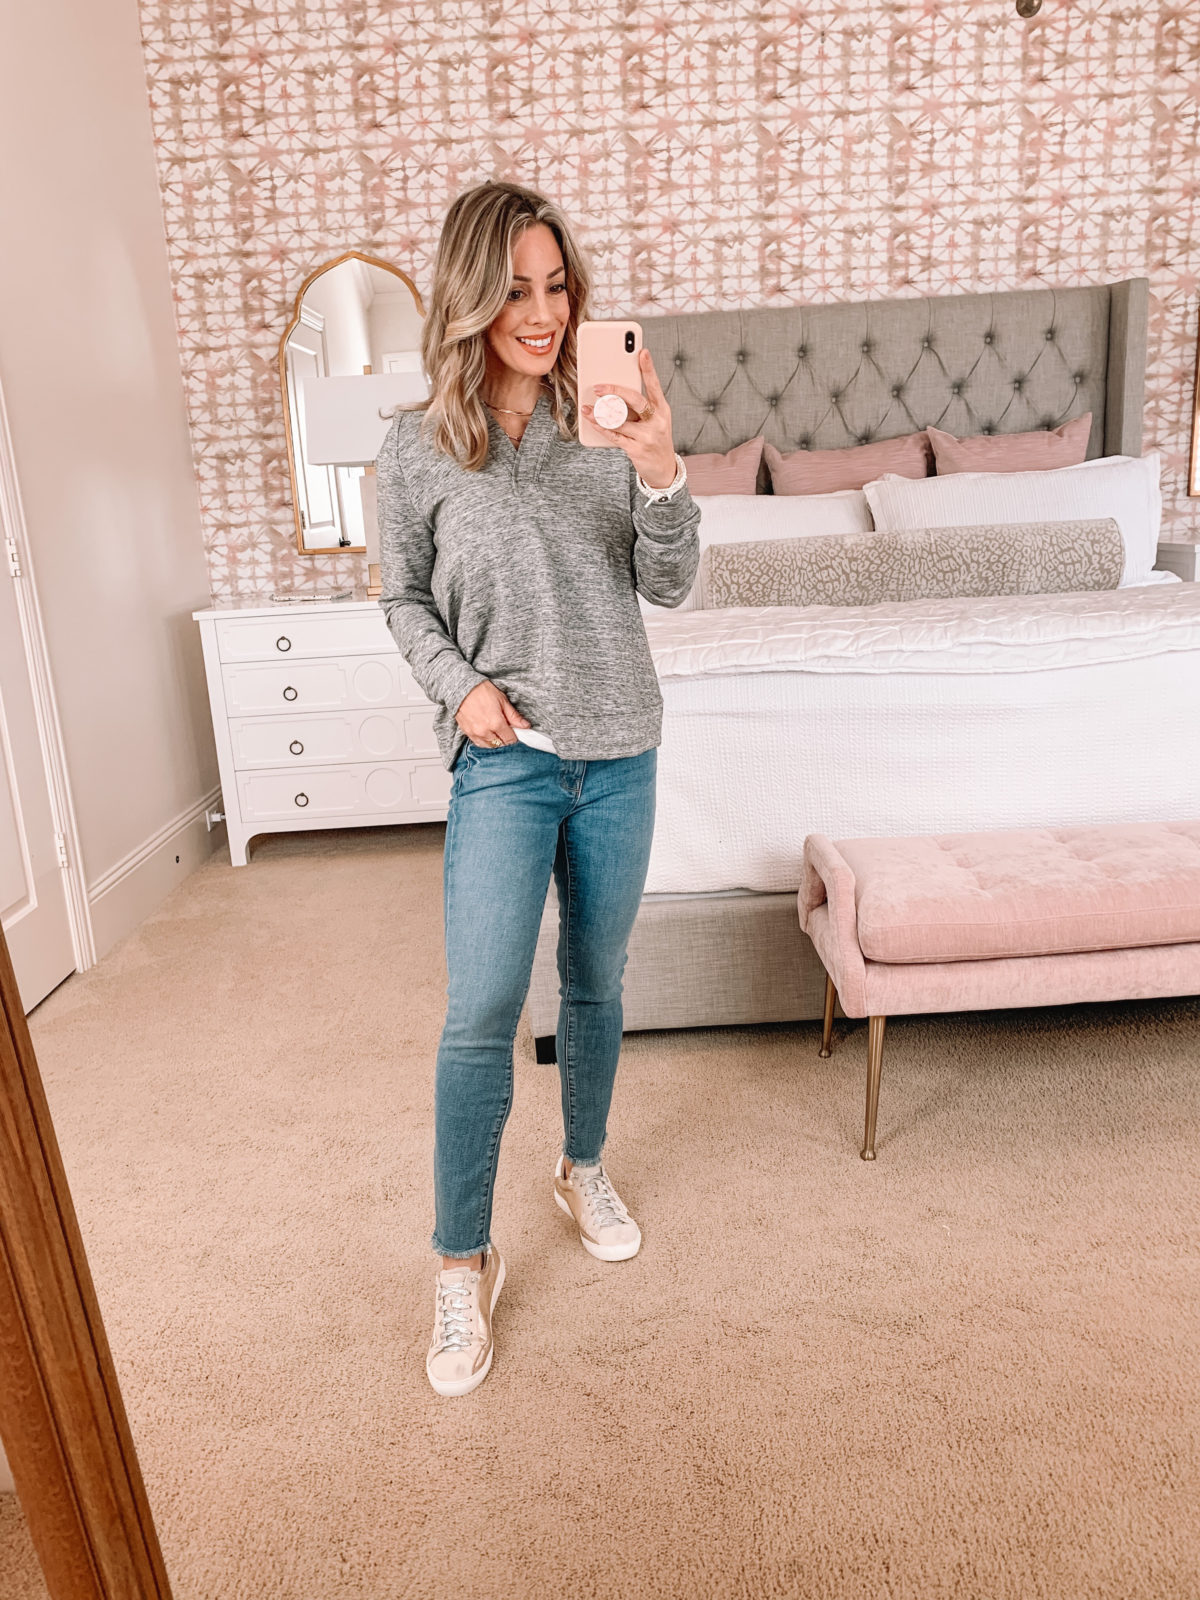 Amazon Fashion Faves, Pullover, Goodthreads Jeans, Sneakers